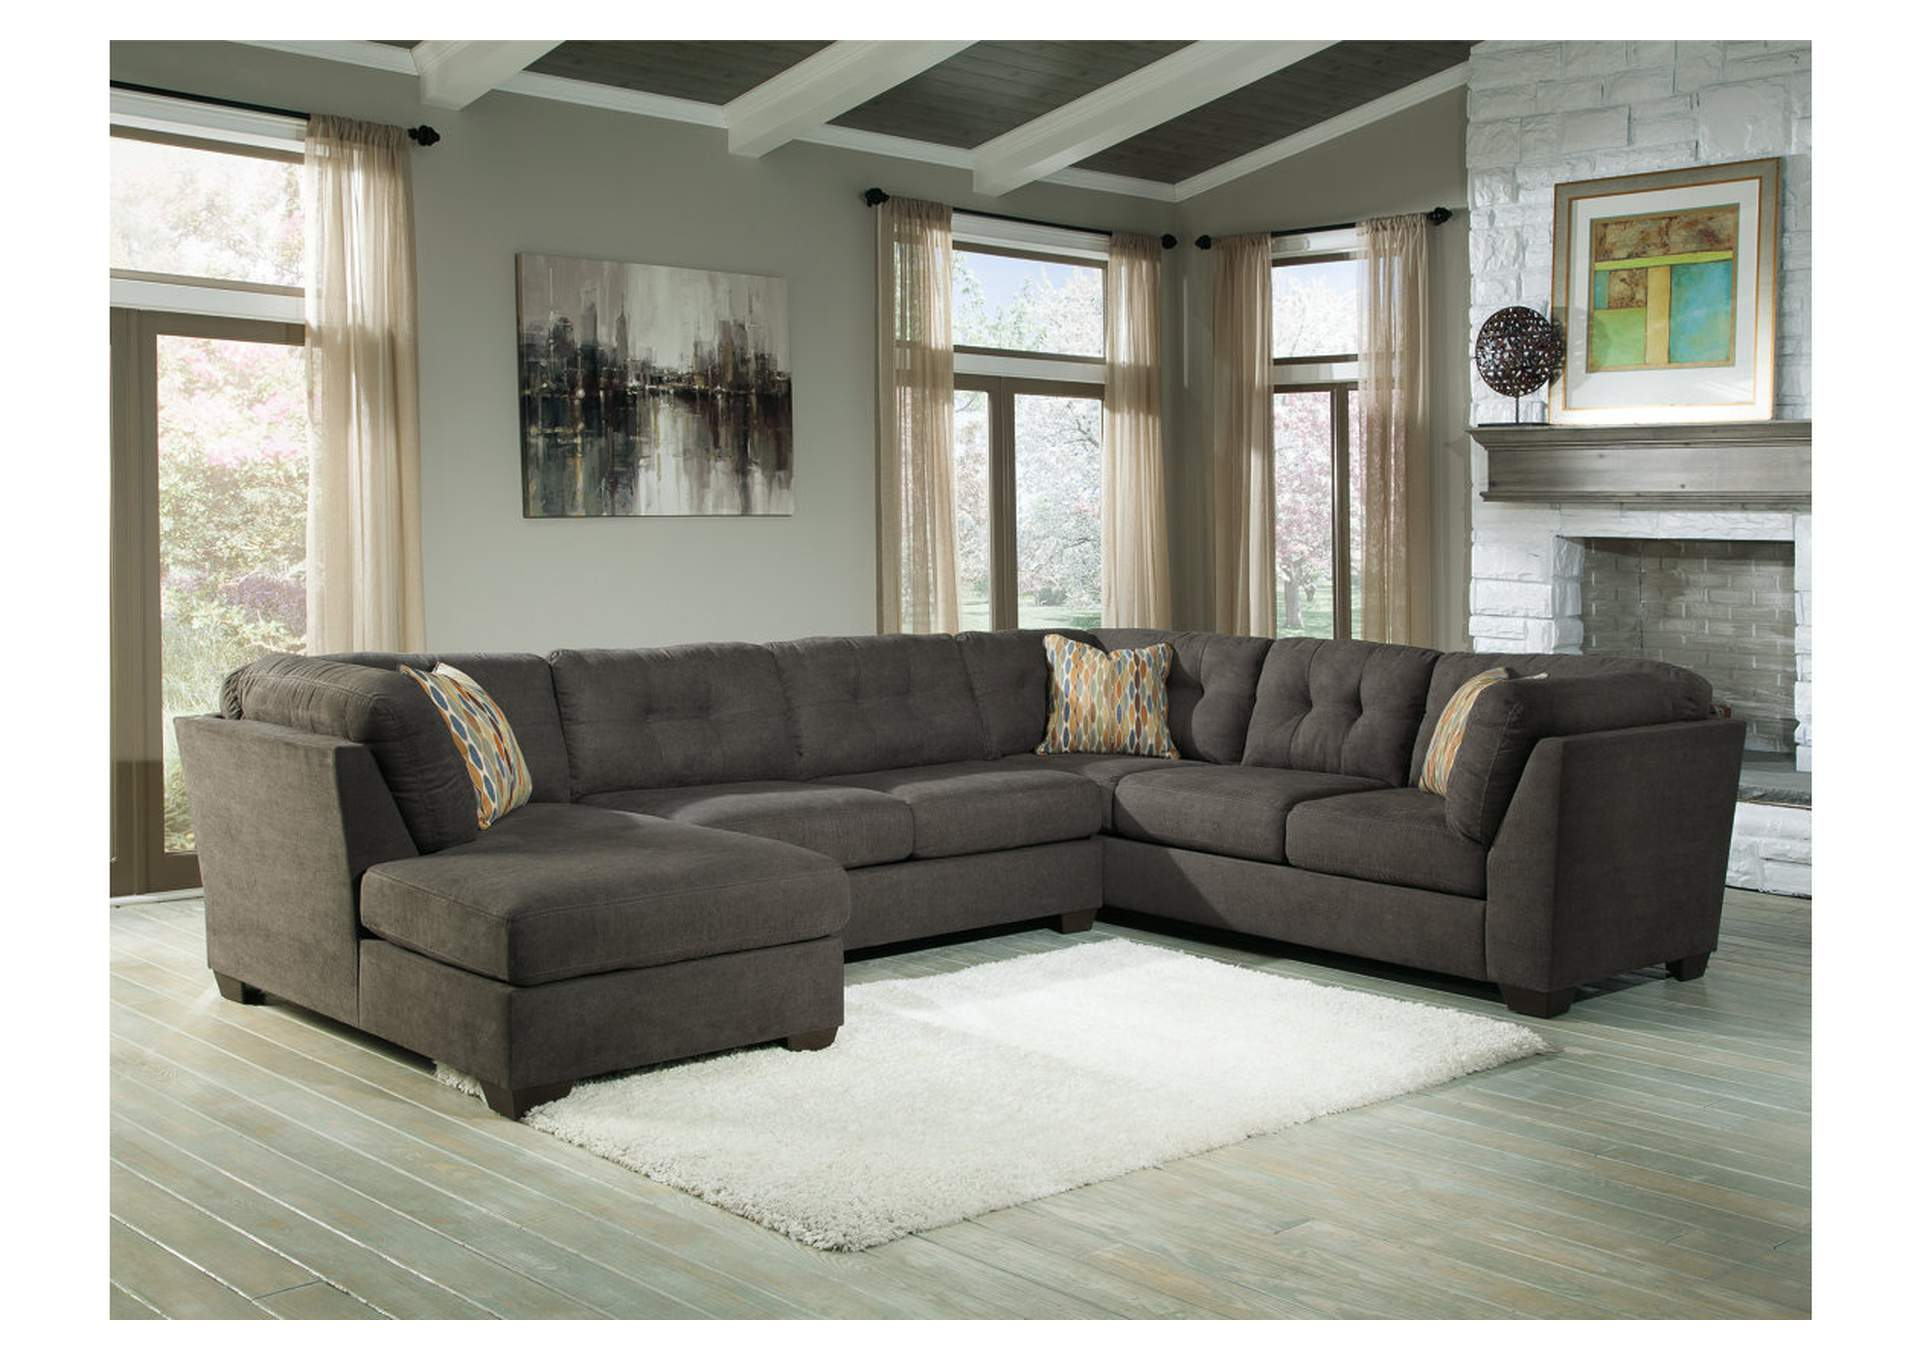 Price Point Furniture Delta City Steel Left Arm Facing Corner Chaise Sectional